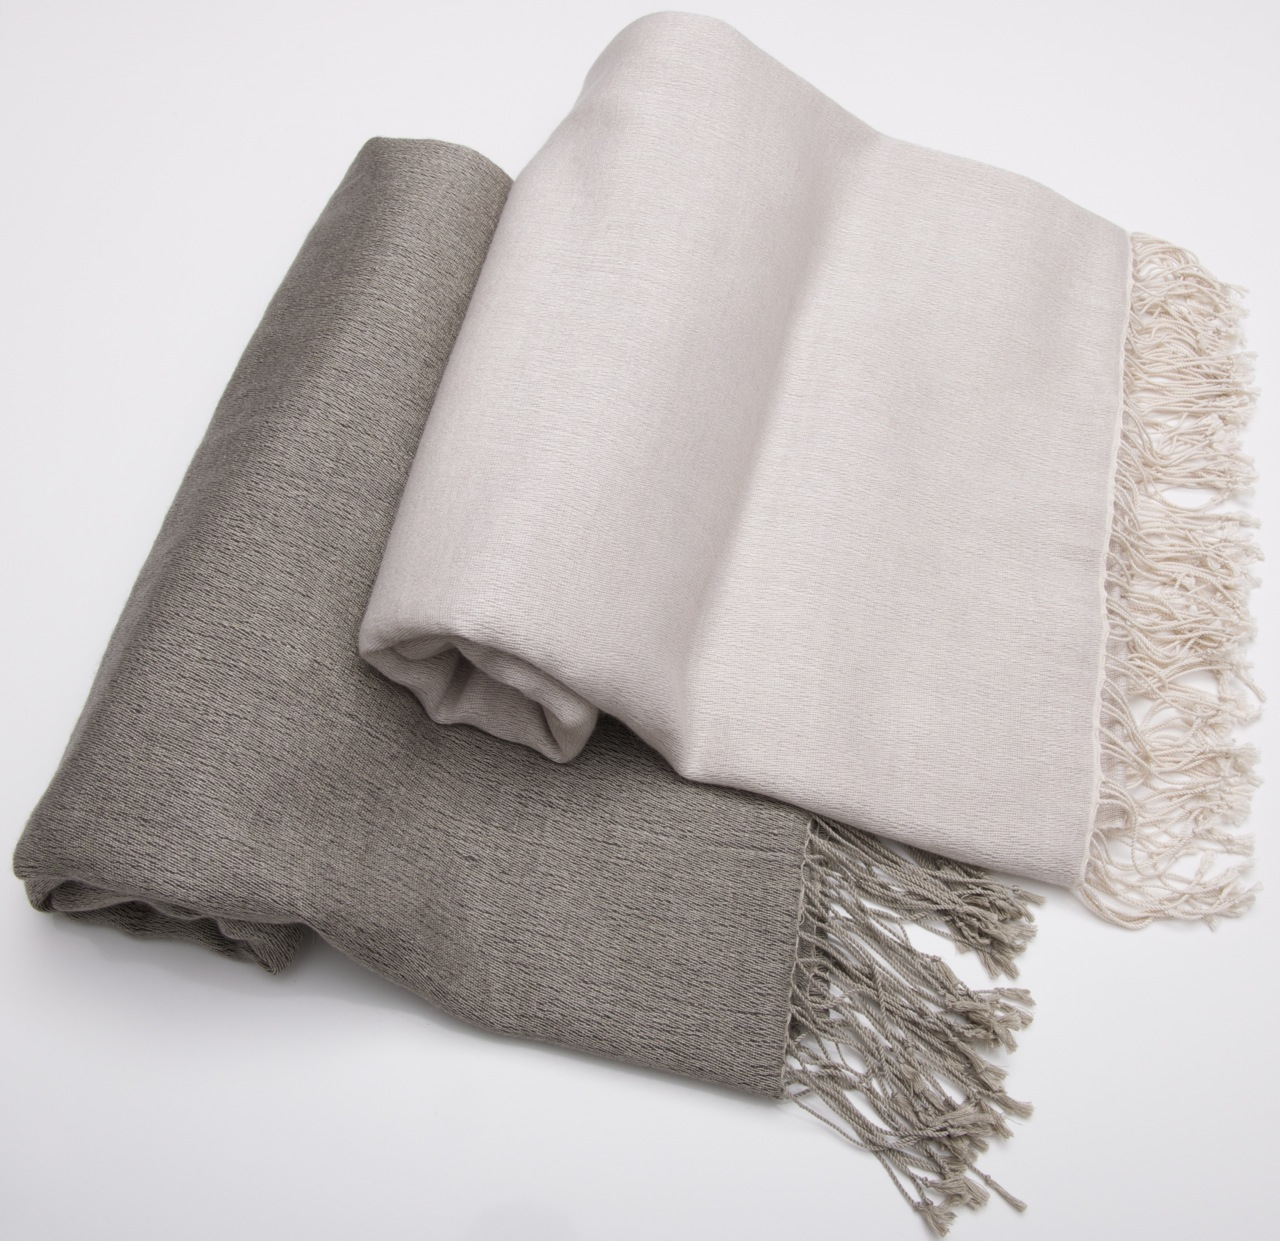 Double ply pashmina throw (made to order), extra large shawl or throw.